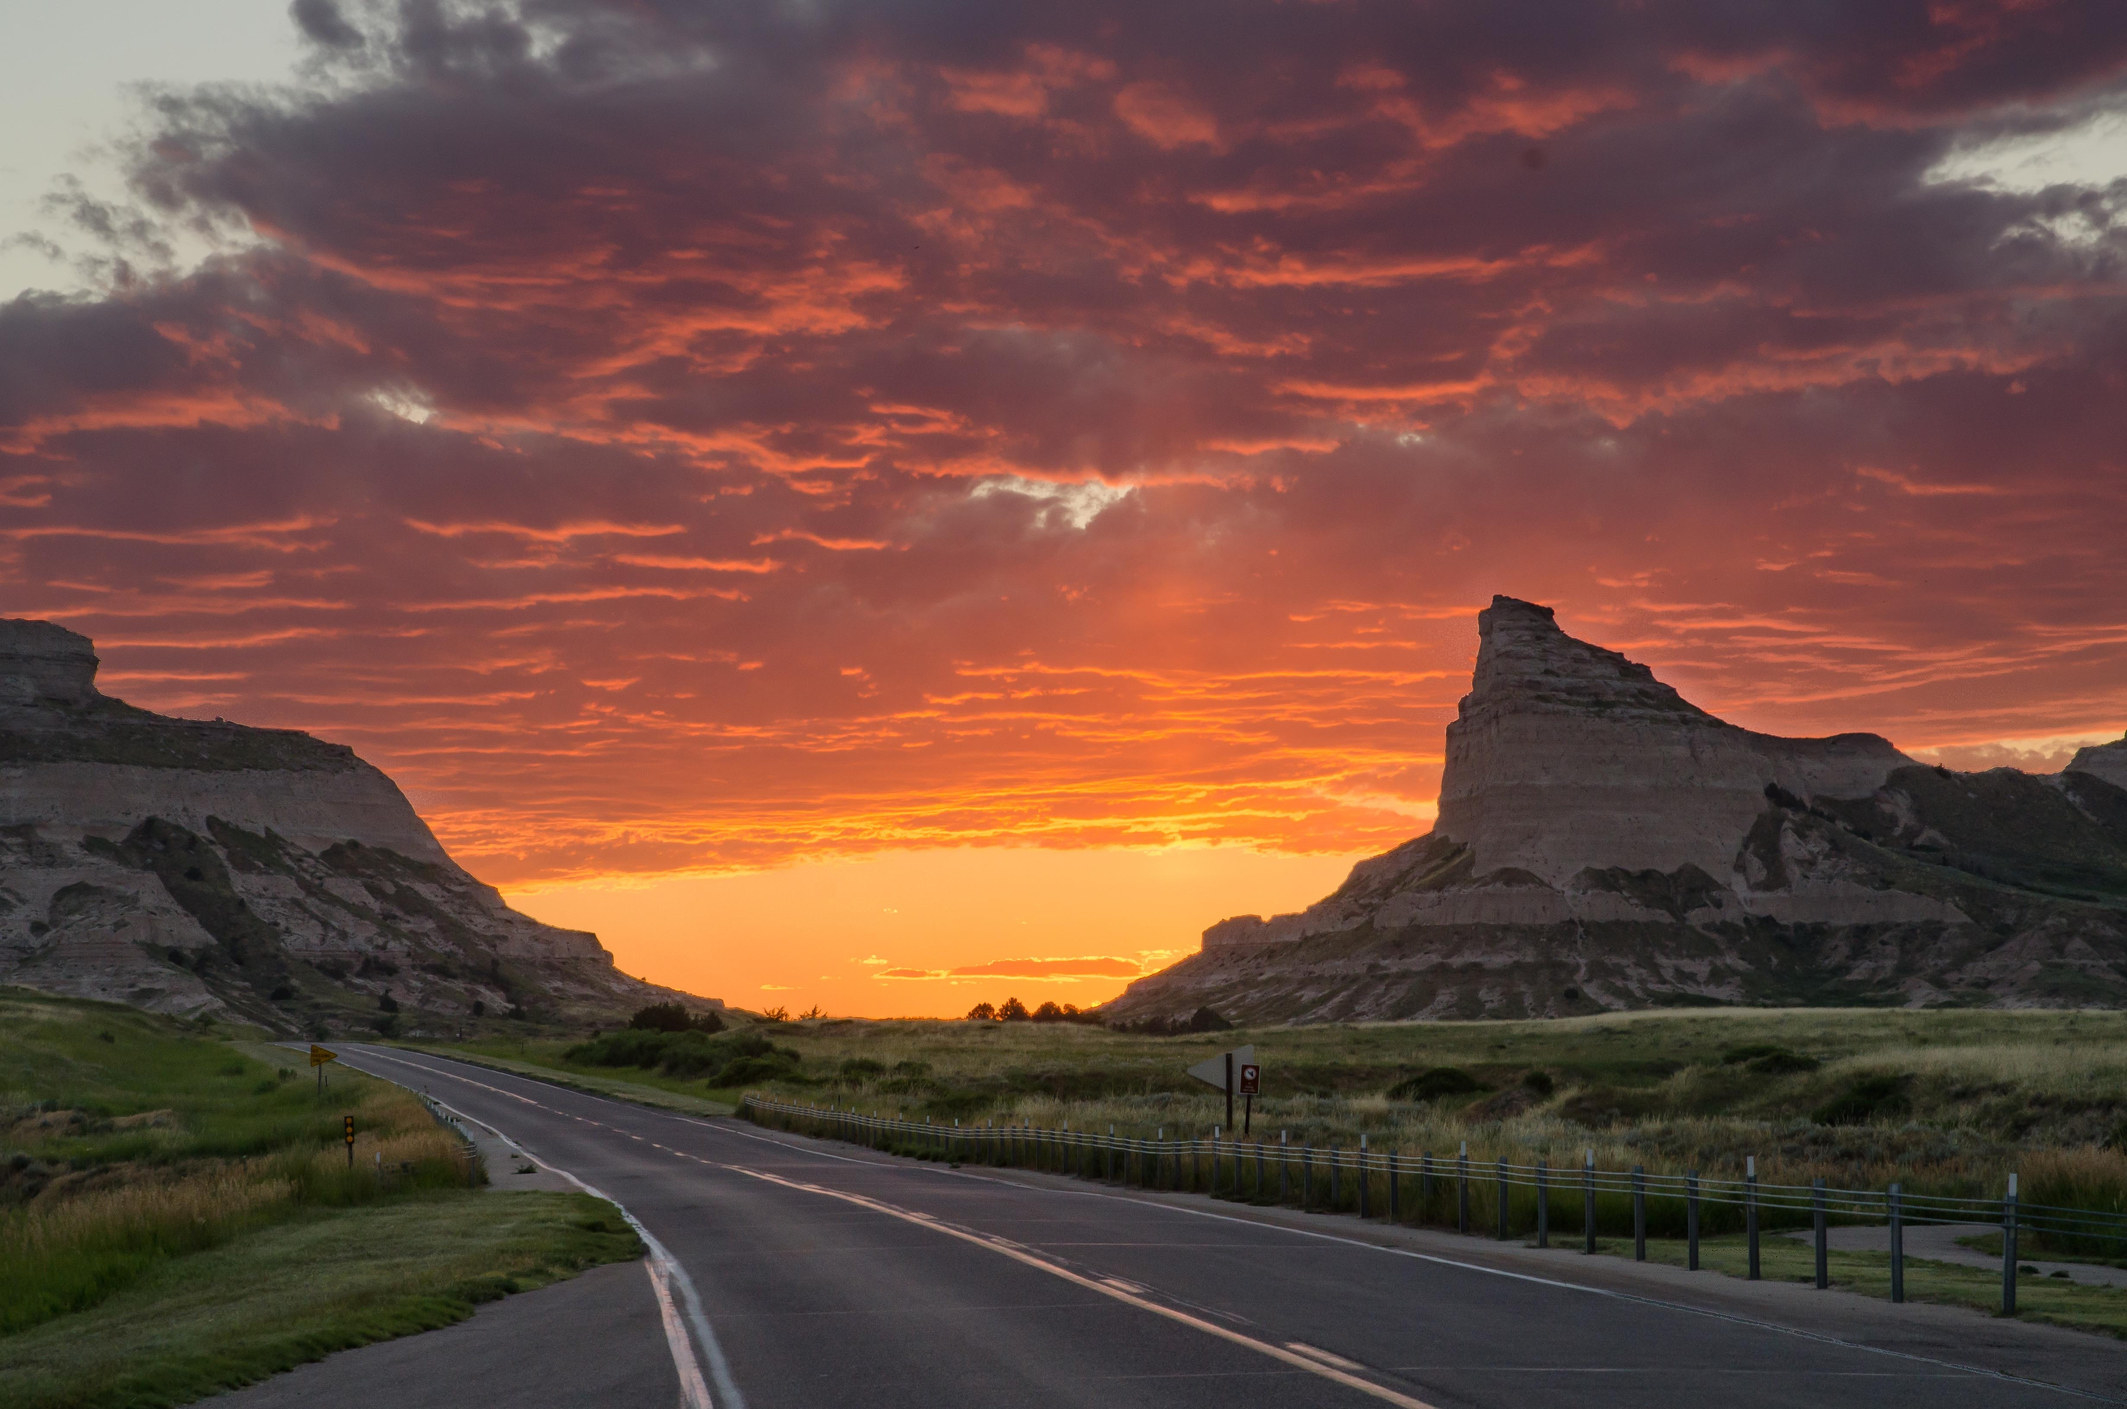 Sunset over Scotts Bluff National Monument.